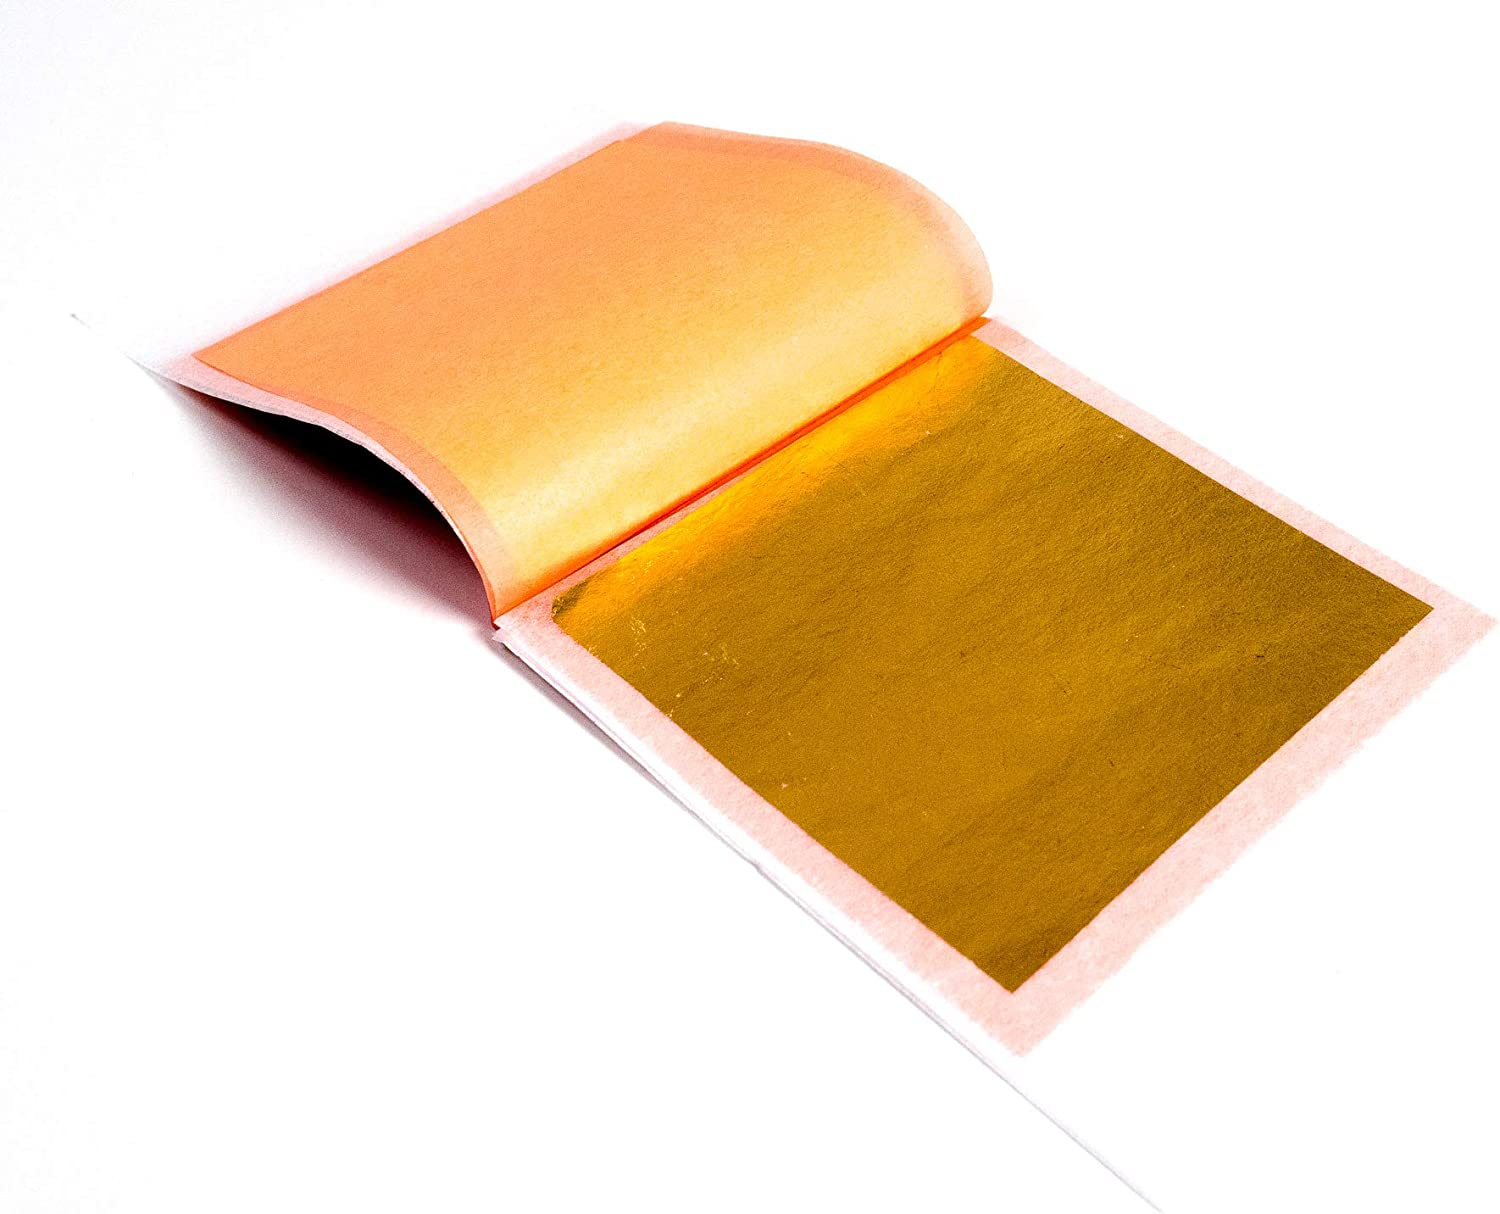 Slofoodgroup 24 Karat Edible Gold Leaf Firm Transfer Sheets (Hard Press Transfer Sheets) 10 Sheets per Book, 3.15 in. by 3. 15 in. Hard Press Transfer Sheets